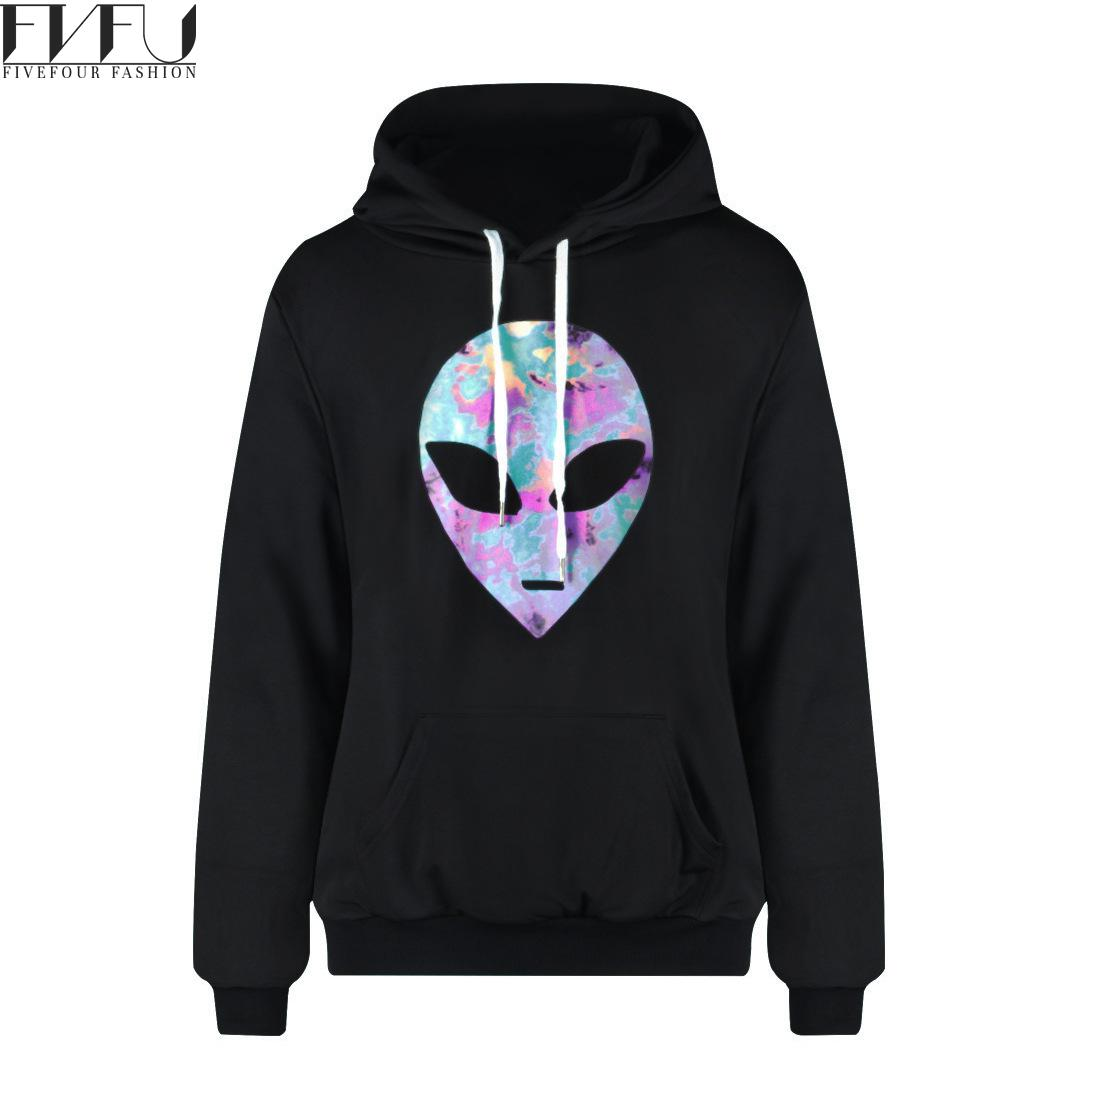 Fashion 2018 Hoodies Sweatshirt Women/men Plus Velvet Alien Print Sweatshirt Hoodie Tops Loose Casual Black Hoodies Plus Size